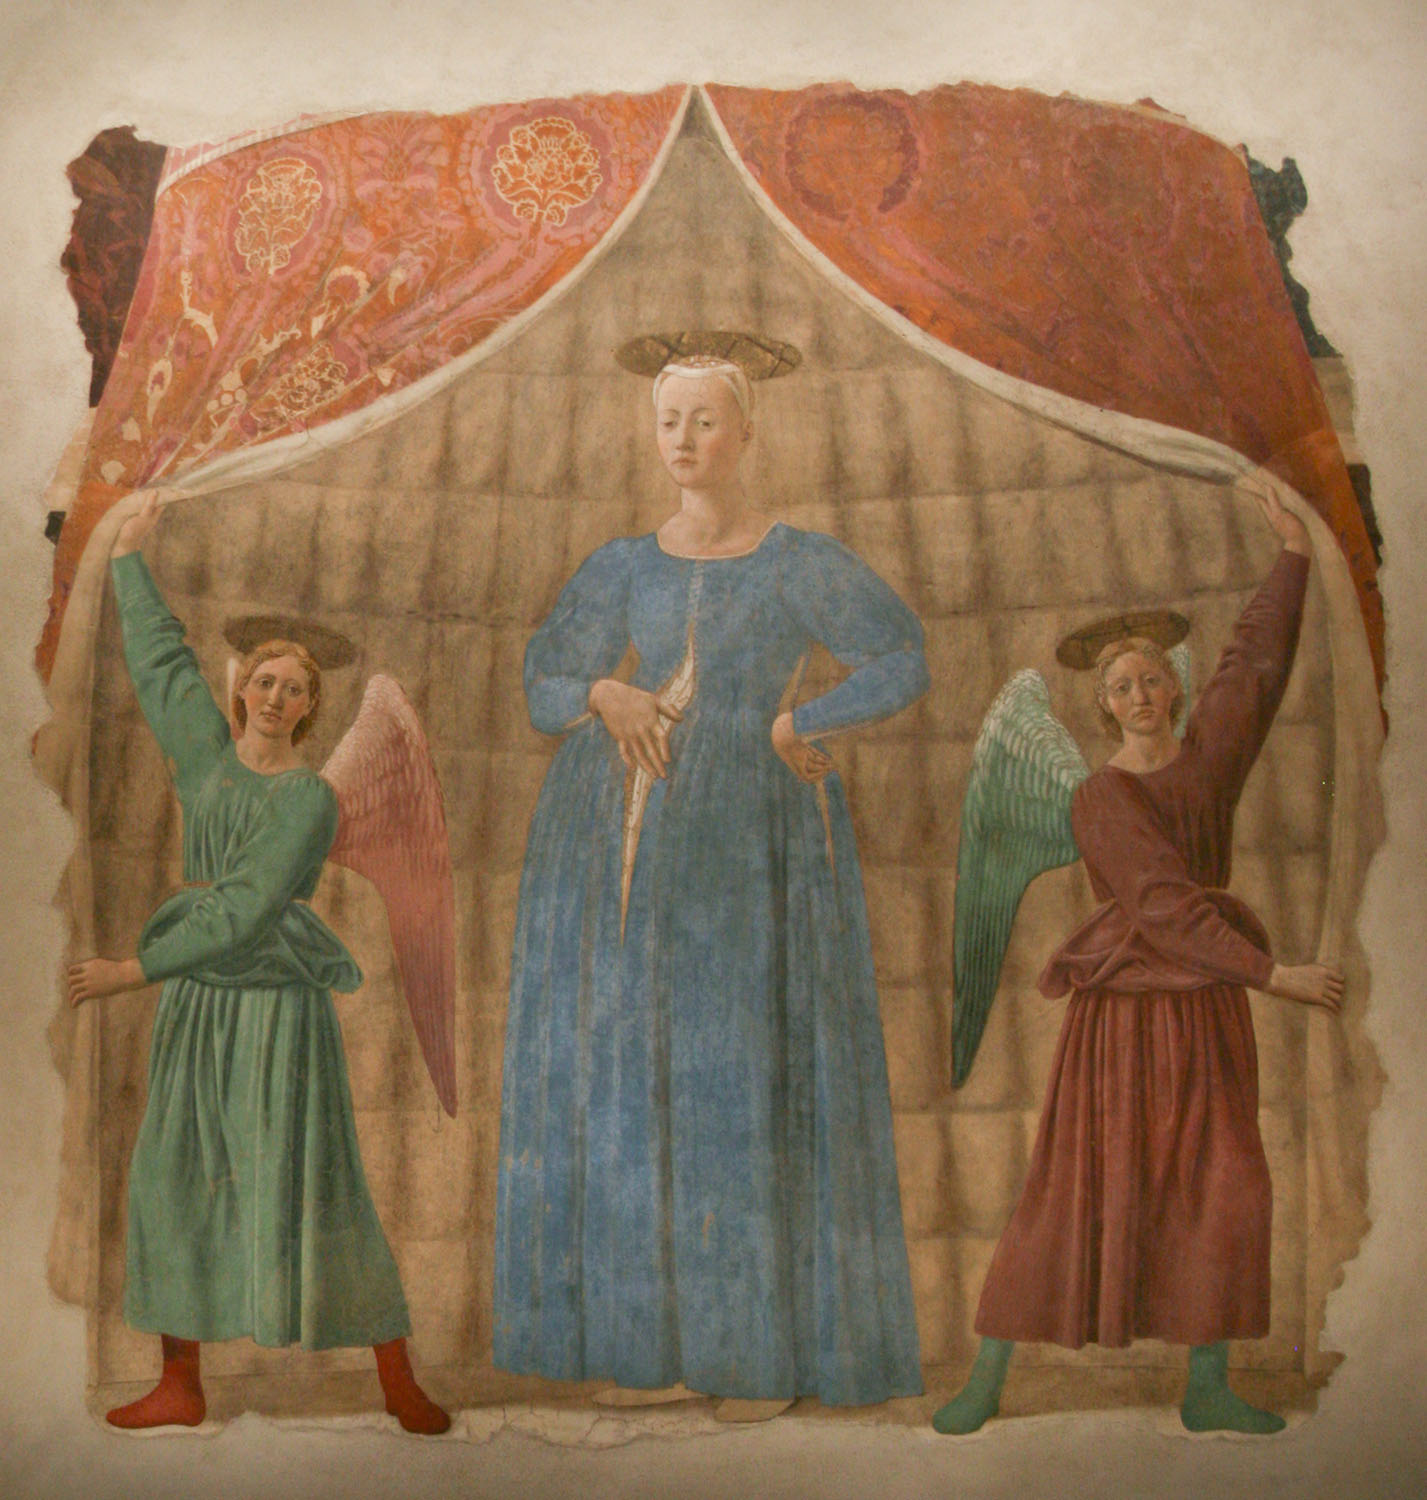 Figure 1-4. A renaissance fresco of two angels, one in green and one in red, parting a curtain to reveal the pregnant Virgin Mary. Mary is wearing blue and is resting one hand on her pregnant belly. Her other hand supports her back.